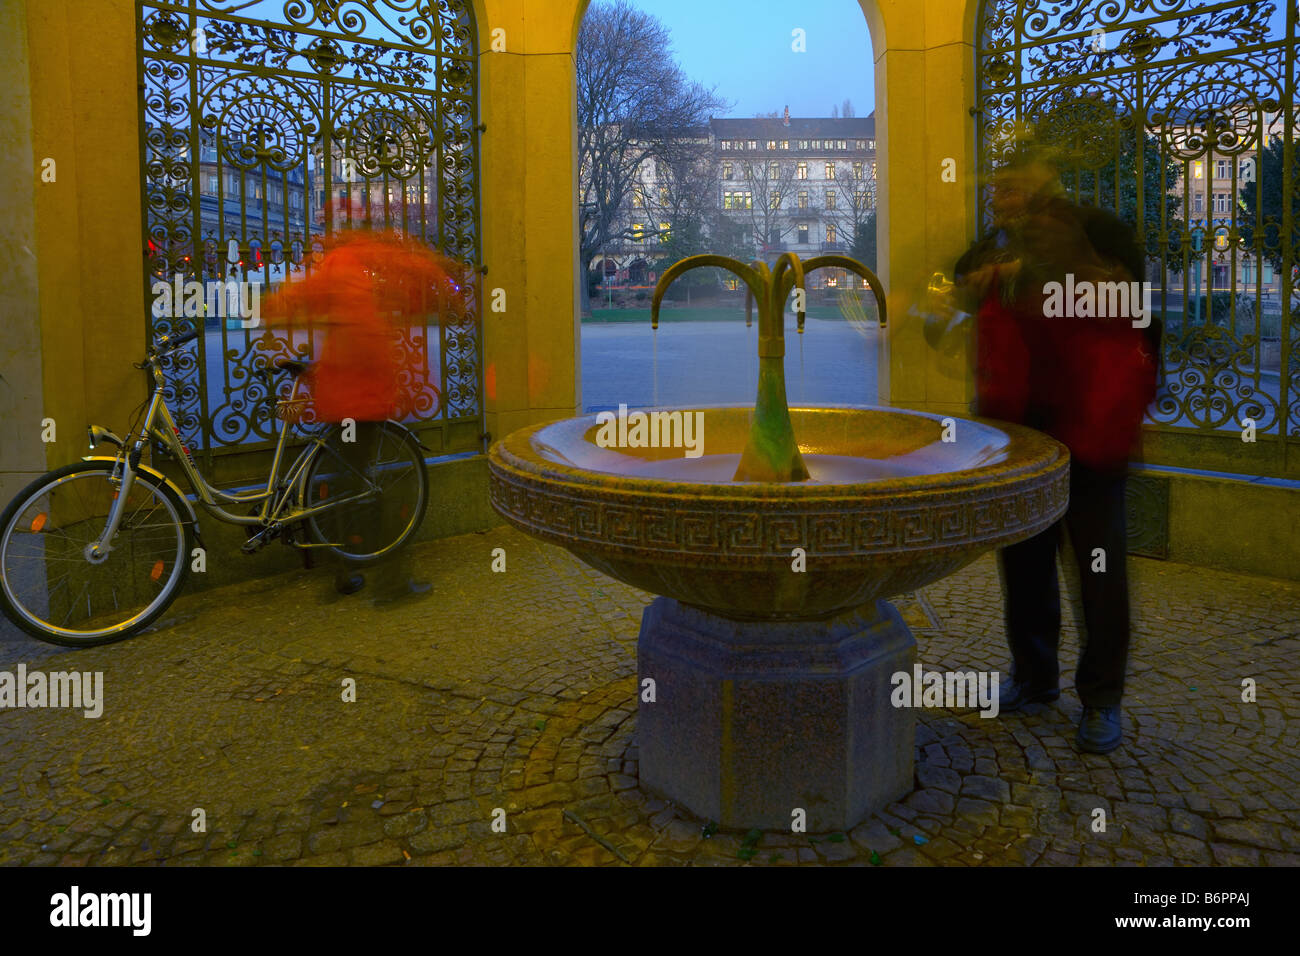 Two men at the Kochbrunnen public fountain, a natural warm mineral spring known for its therapeutic properties - Stock Image